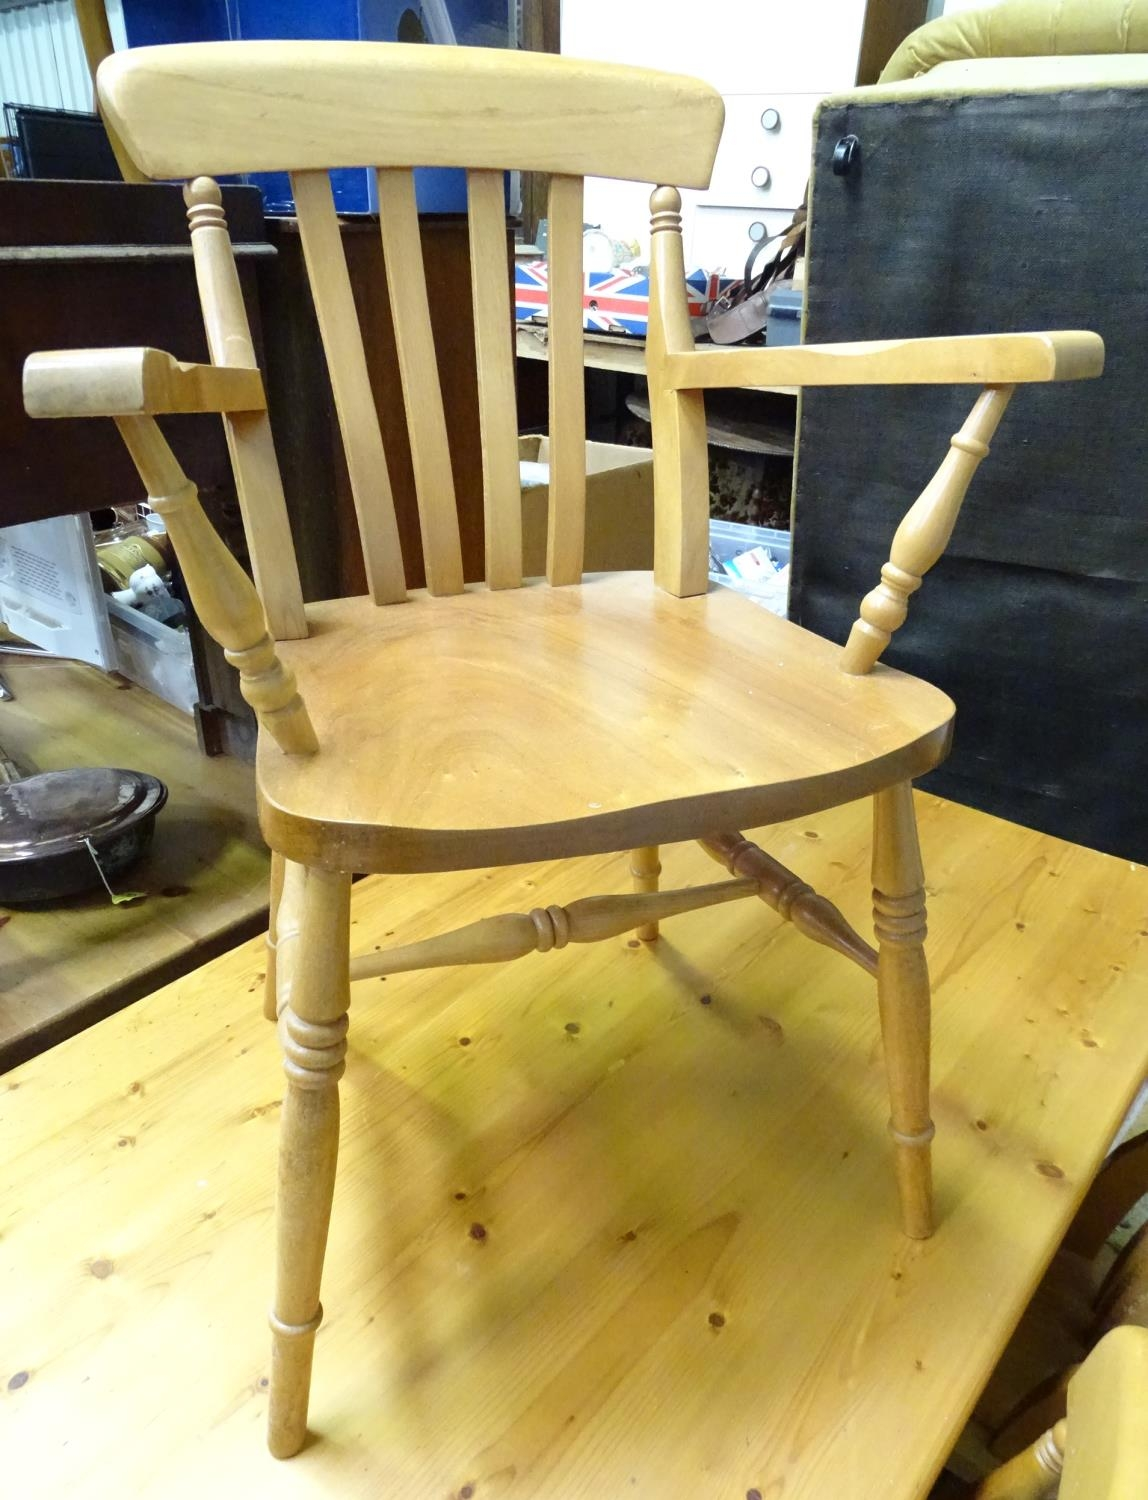 A pine dining table with 6 chairs Please Note - we do not make reference to the condition of lots - Image 3 of 5